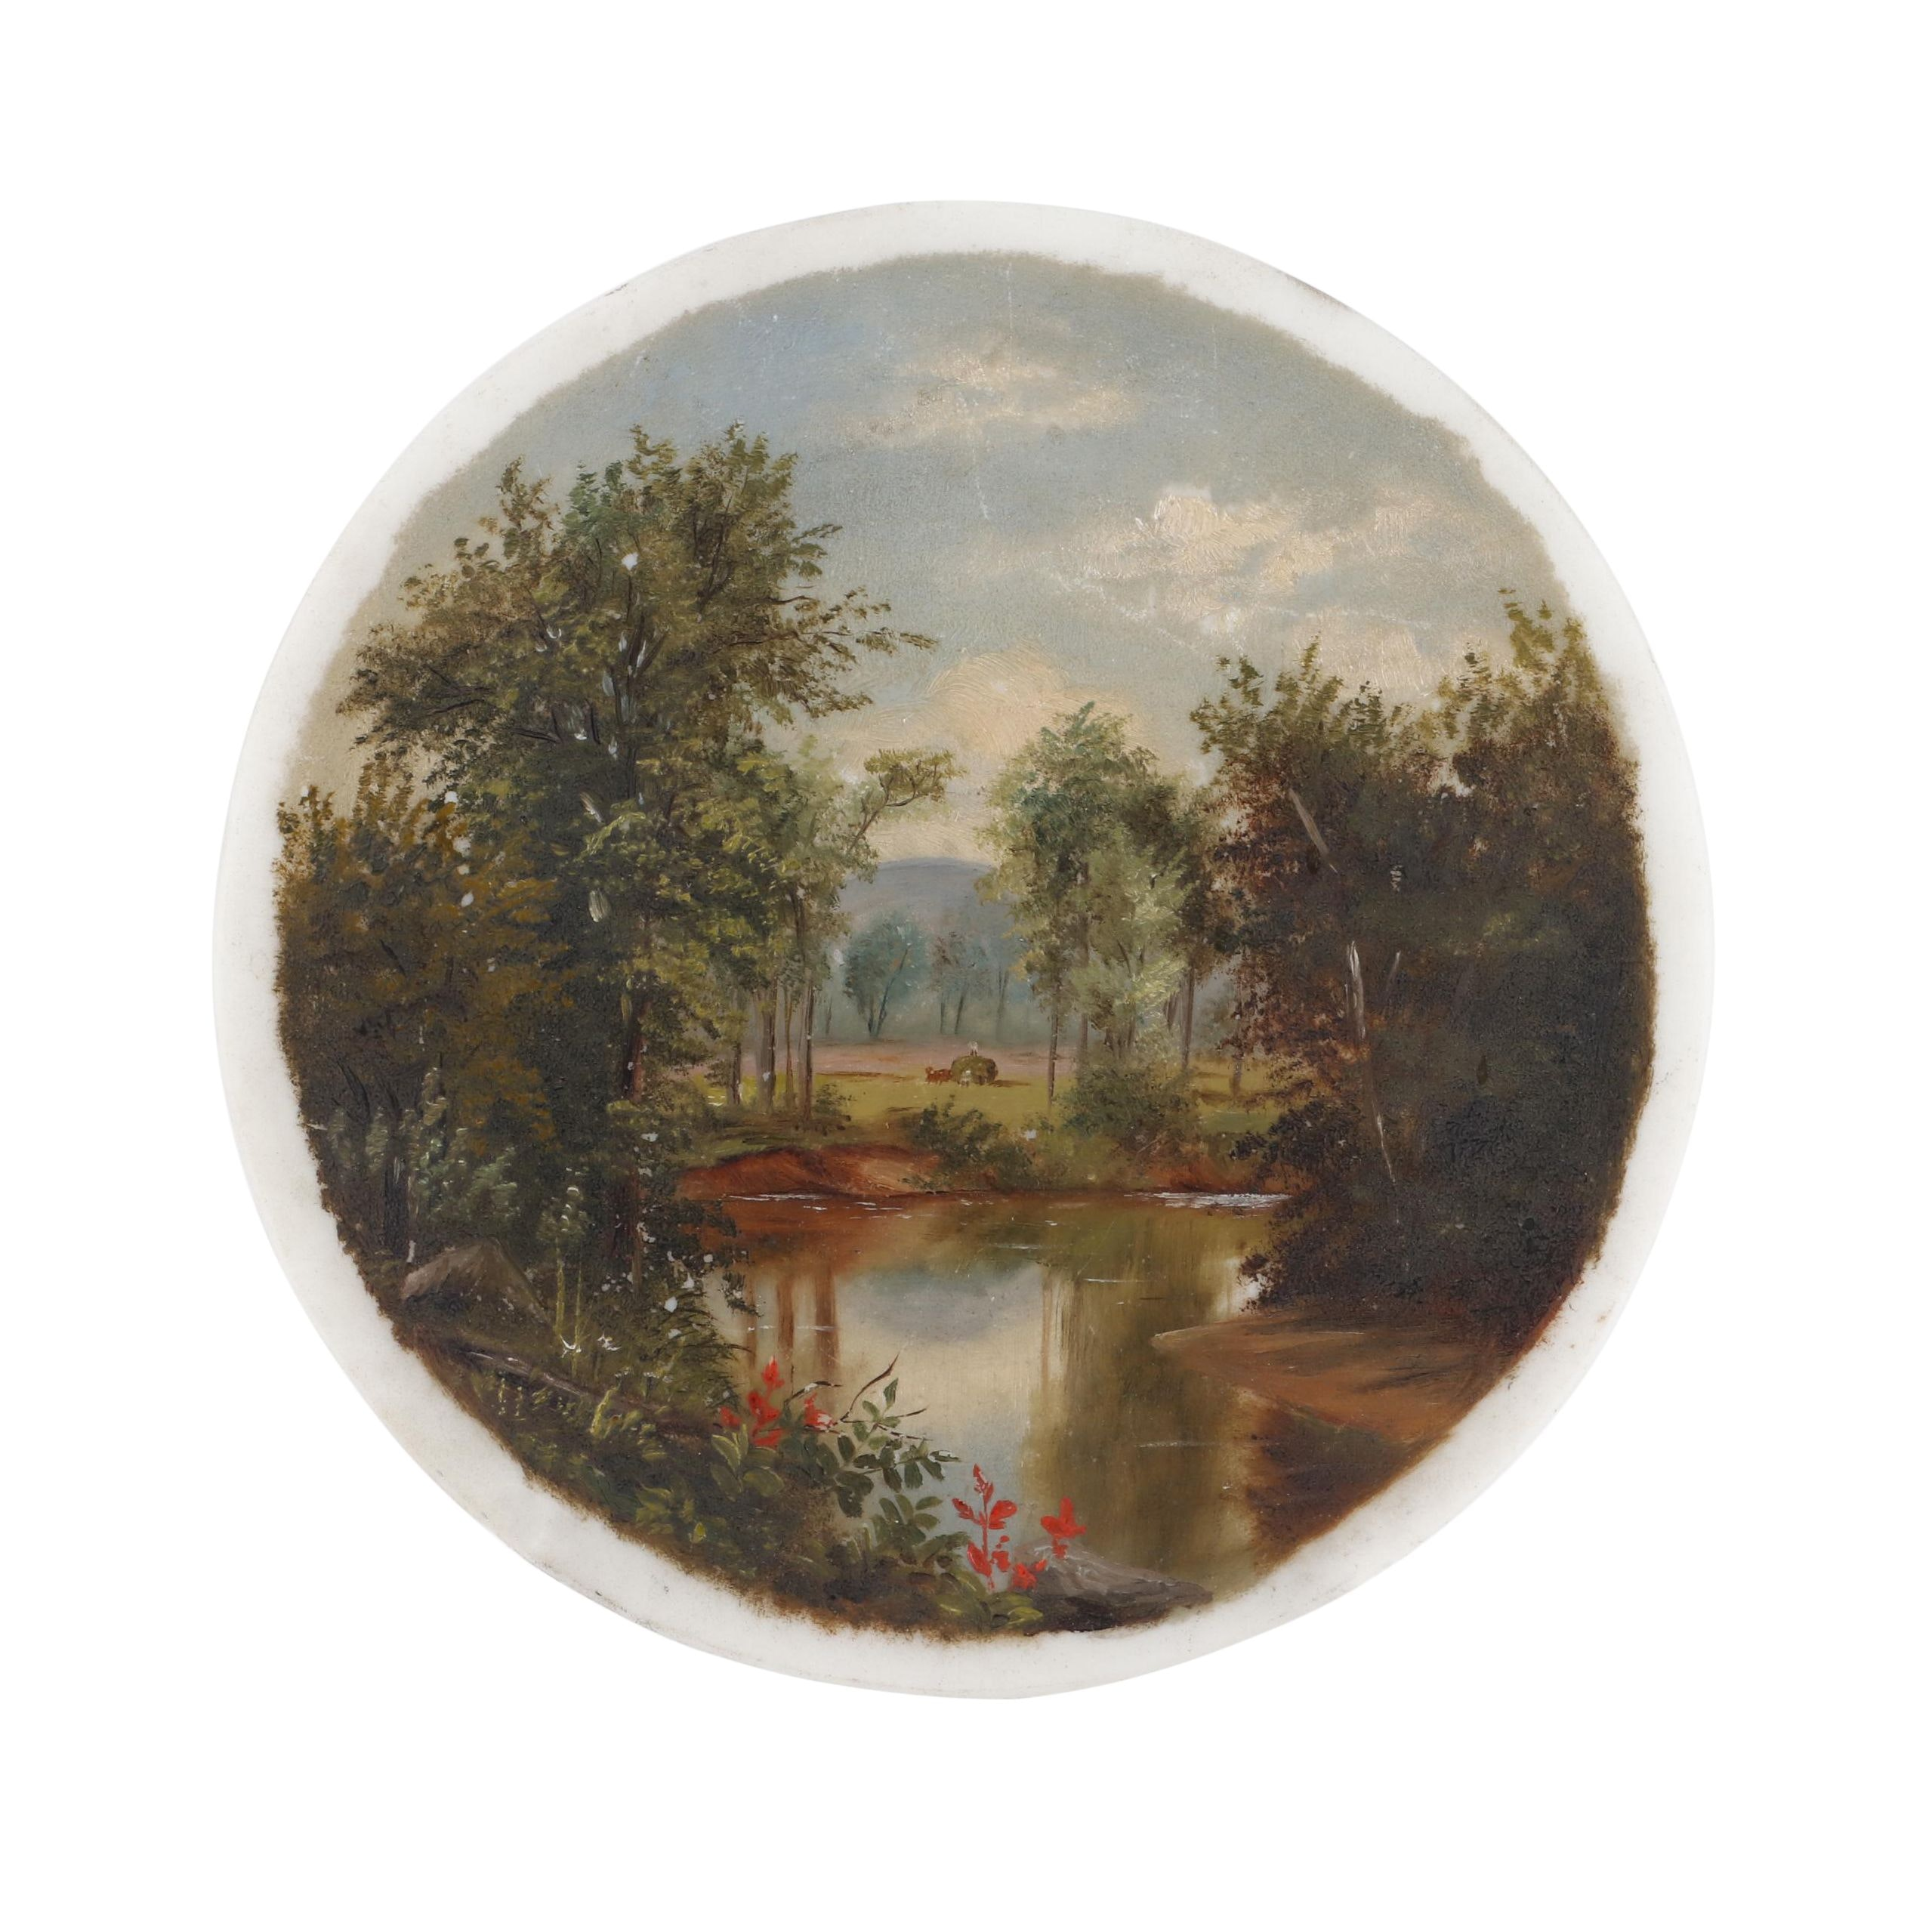 19th Century Landscape Oil Painting on Porcelain